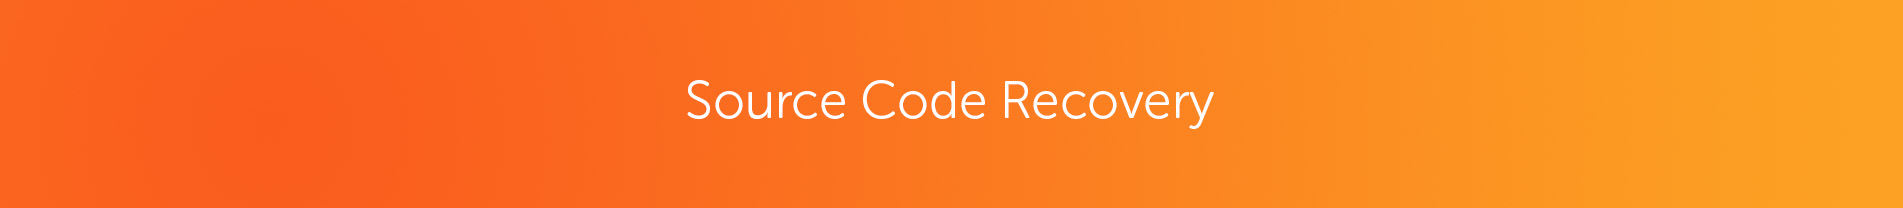 Source Code Recovery